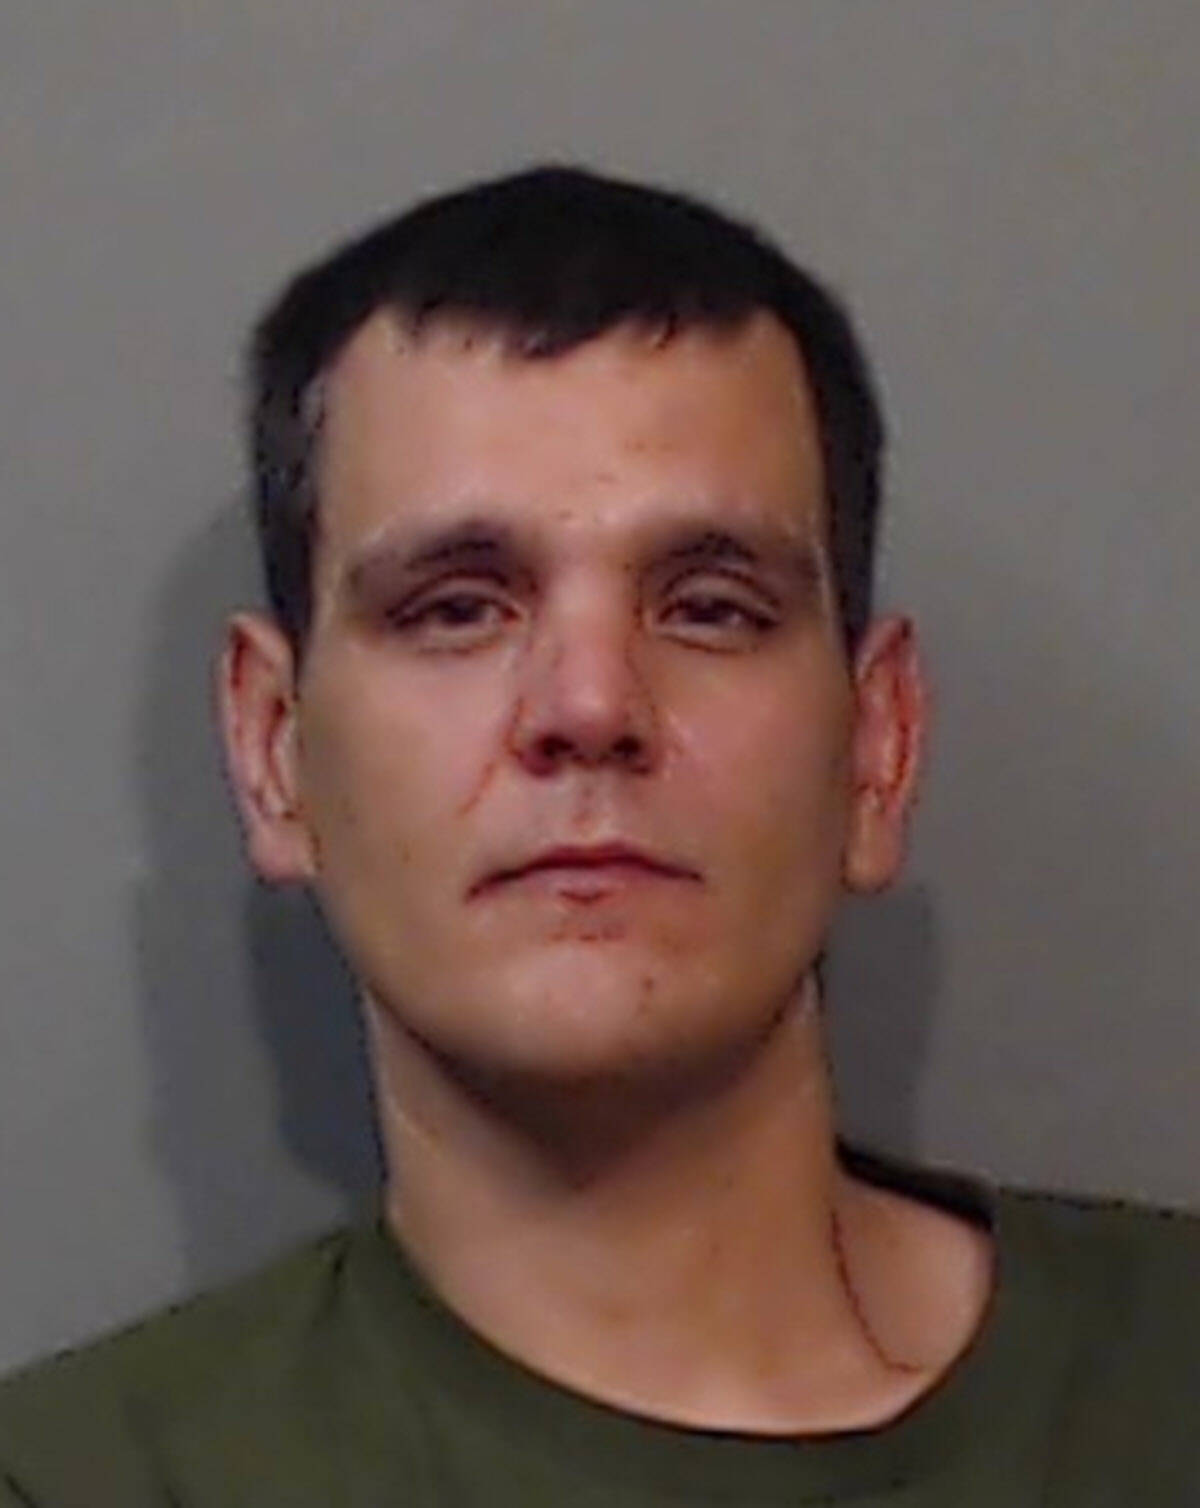 """Name: RIVARD, Mathew Age: 35 Height: 6'1"""" ft Weight: 201lbs Hair: Brown Eyes: Brown Wanted: Assault, Assault with a Weapon, Utter Threats and Mischief Under. Warrant in effect: August 31, 2021 Parole Jurisdiction: Chilliwack, BC"""